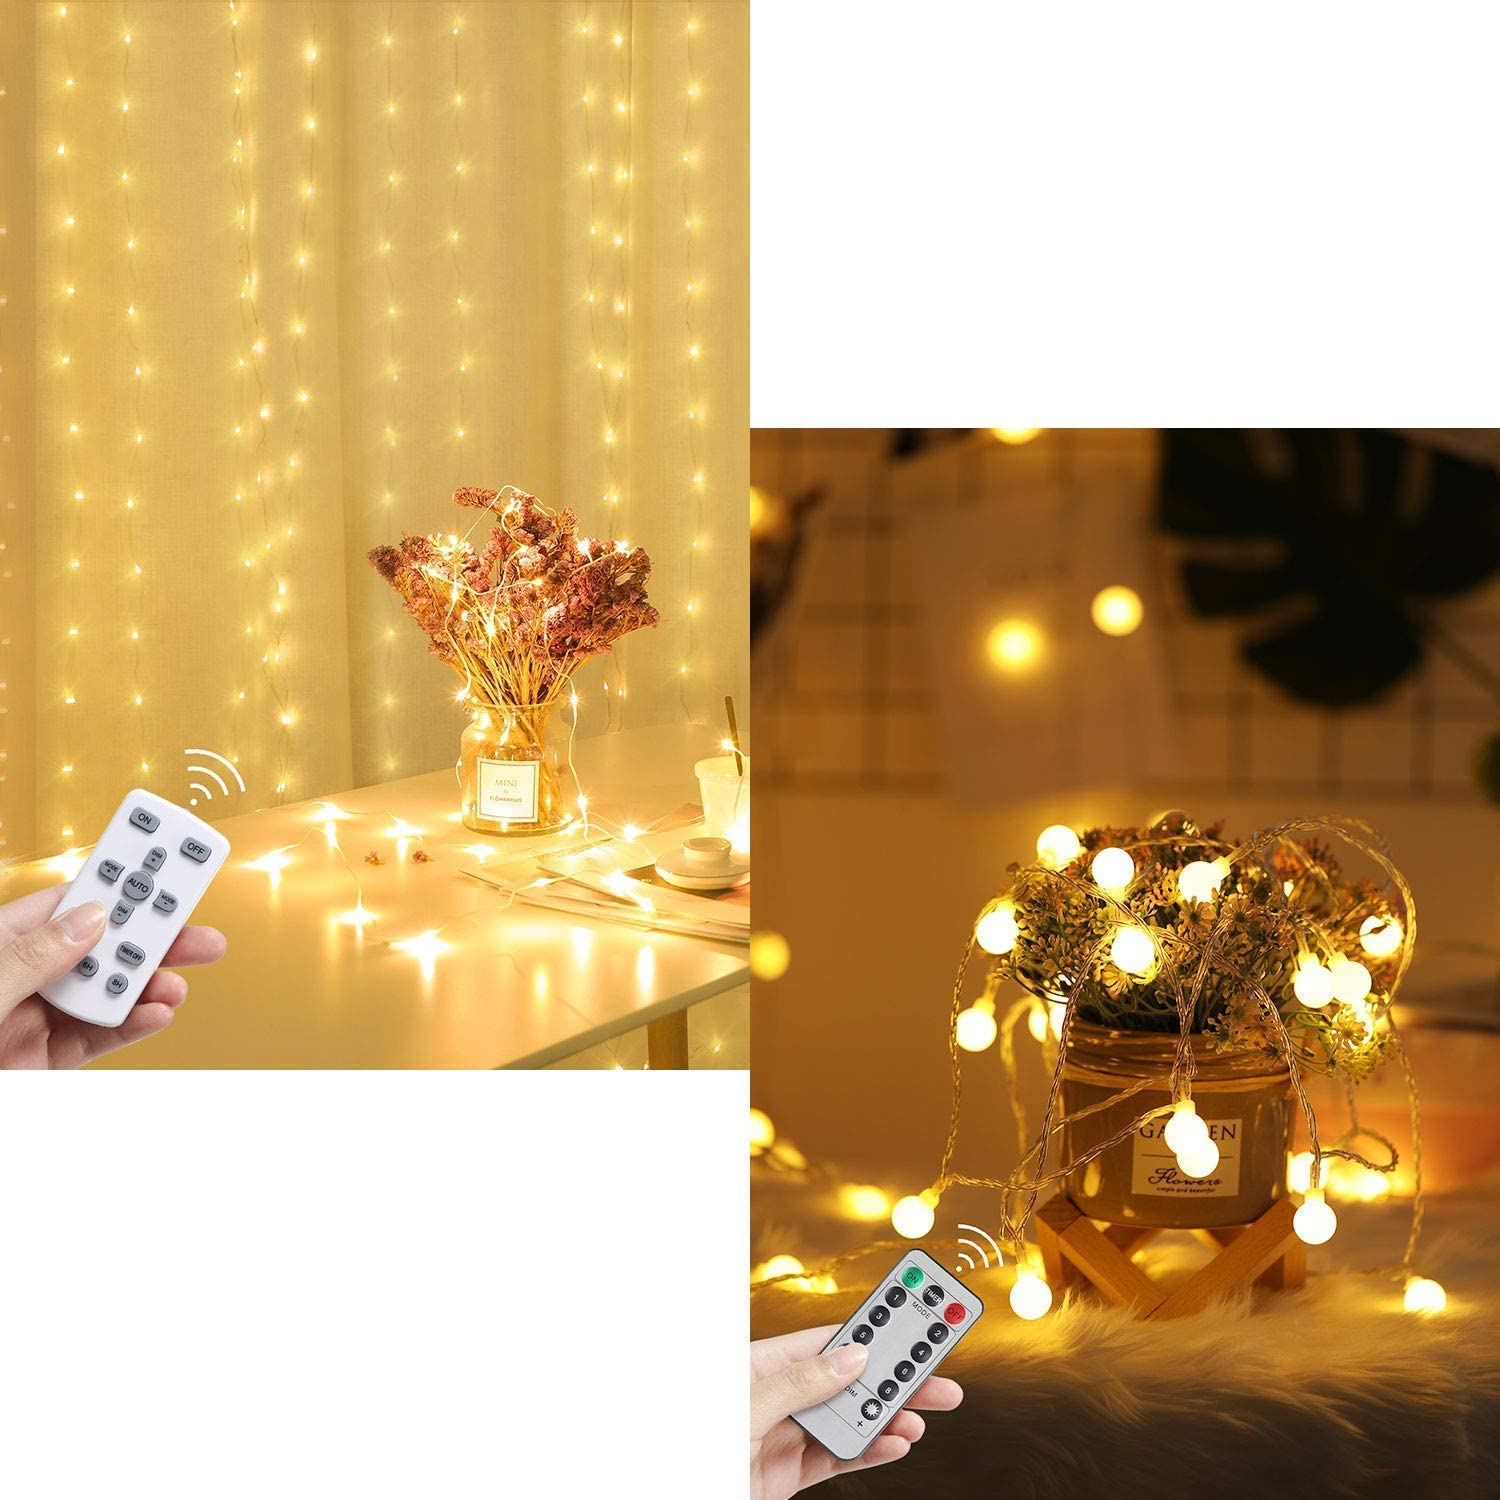 540 LED Fairy Window Curtain String Light with Remote | 2 x 100 LED Globe String Lights Battery Operated Waterproof